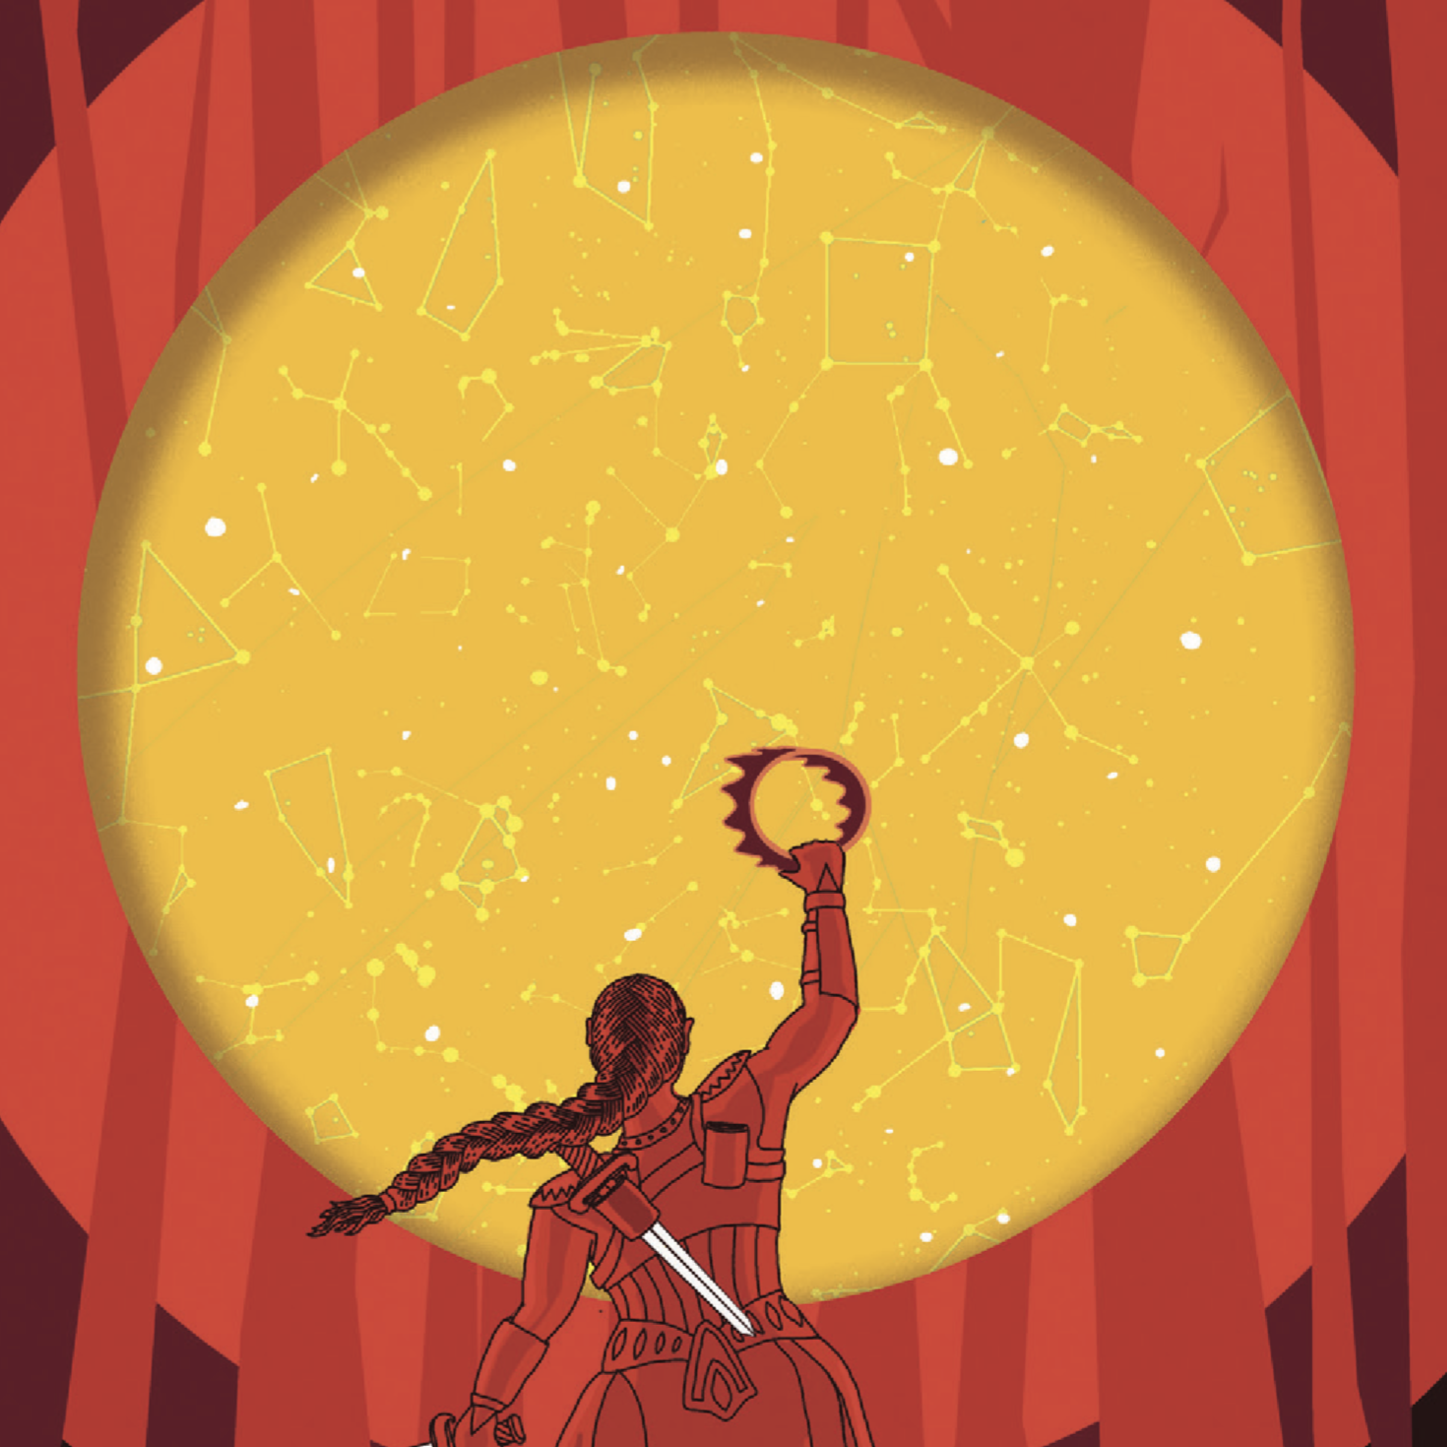 A swordswoman with a long braid raises a crown in front of a star map.